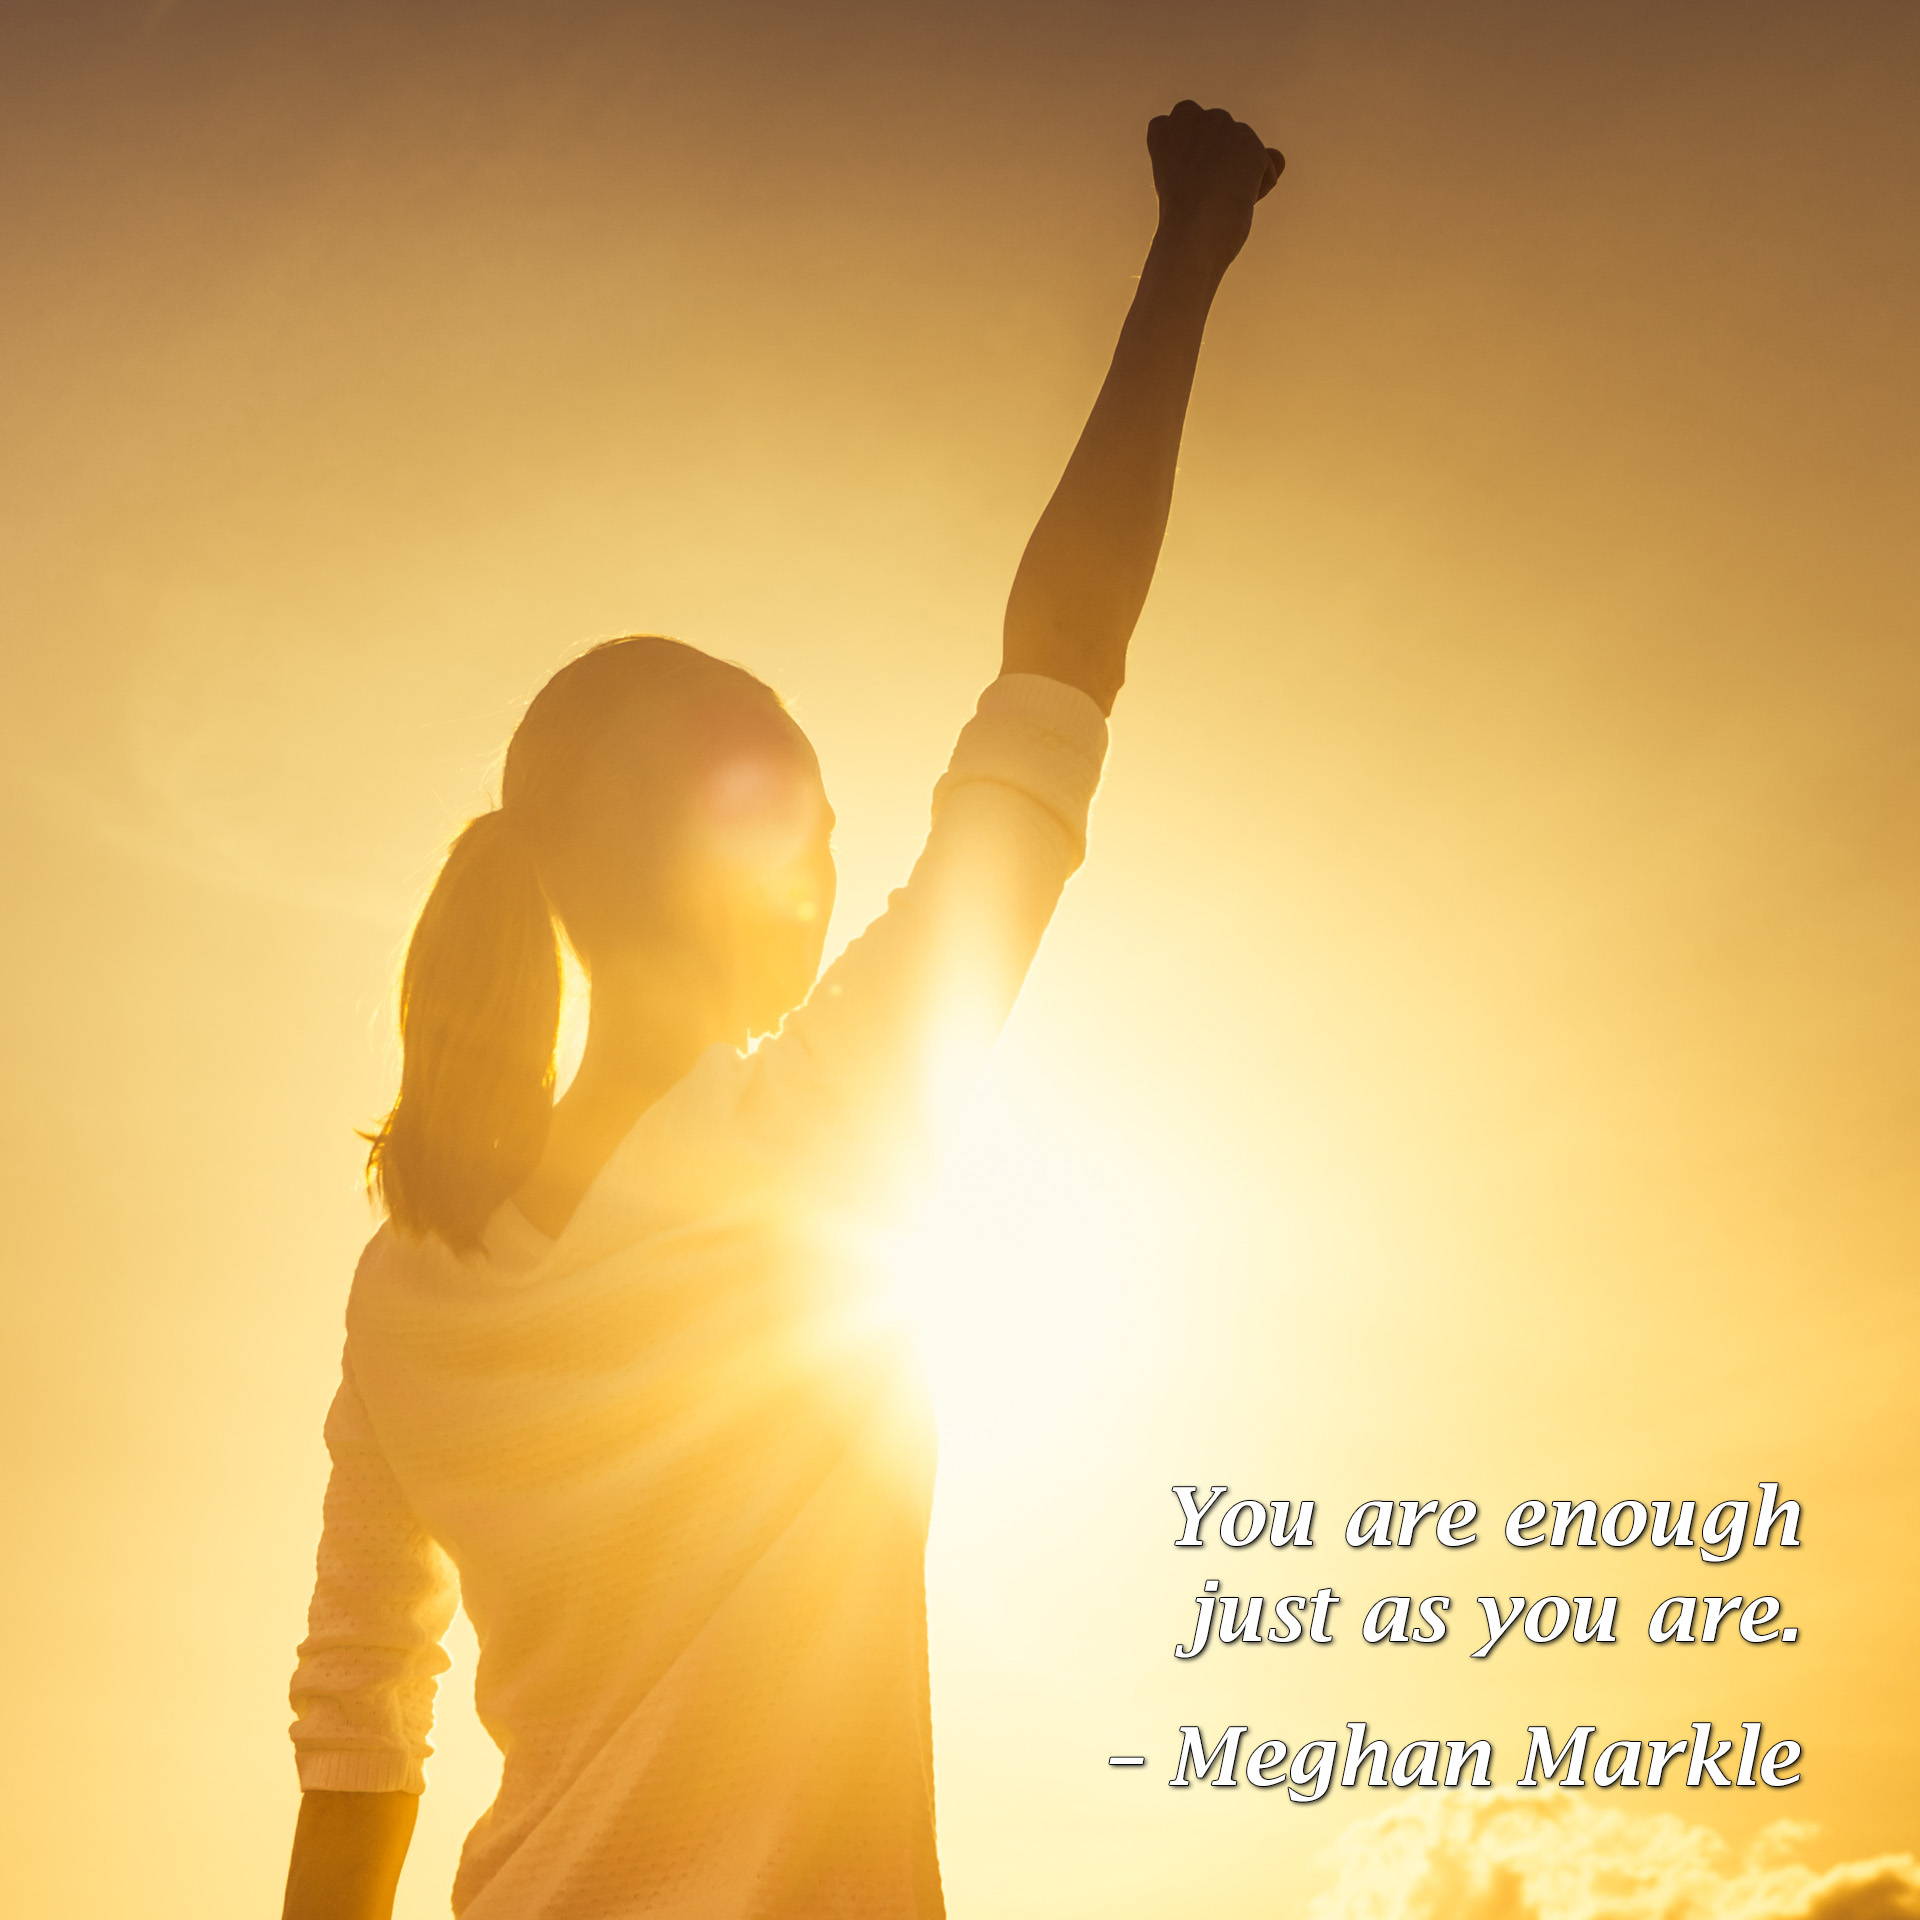 You are enough just as you are - Meghan Markle